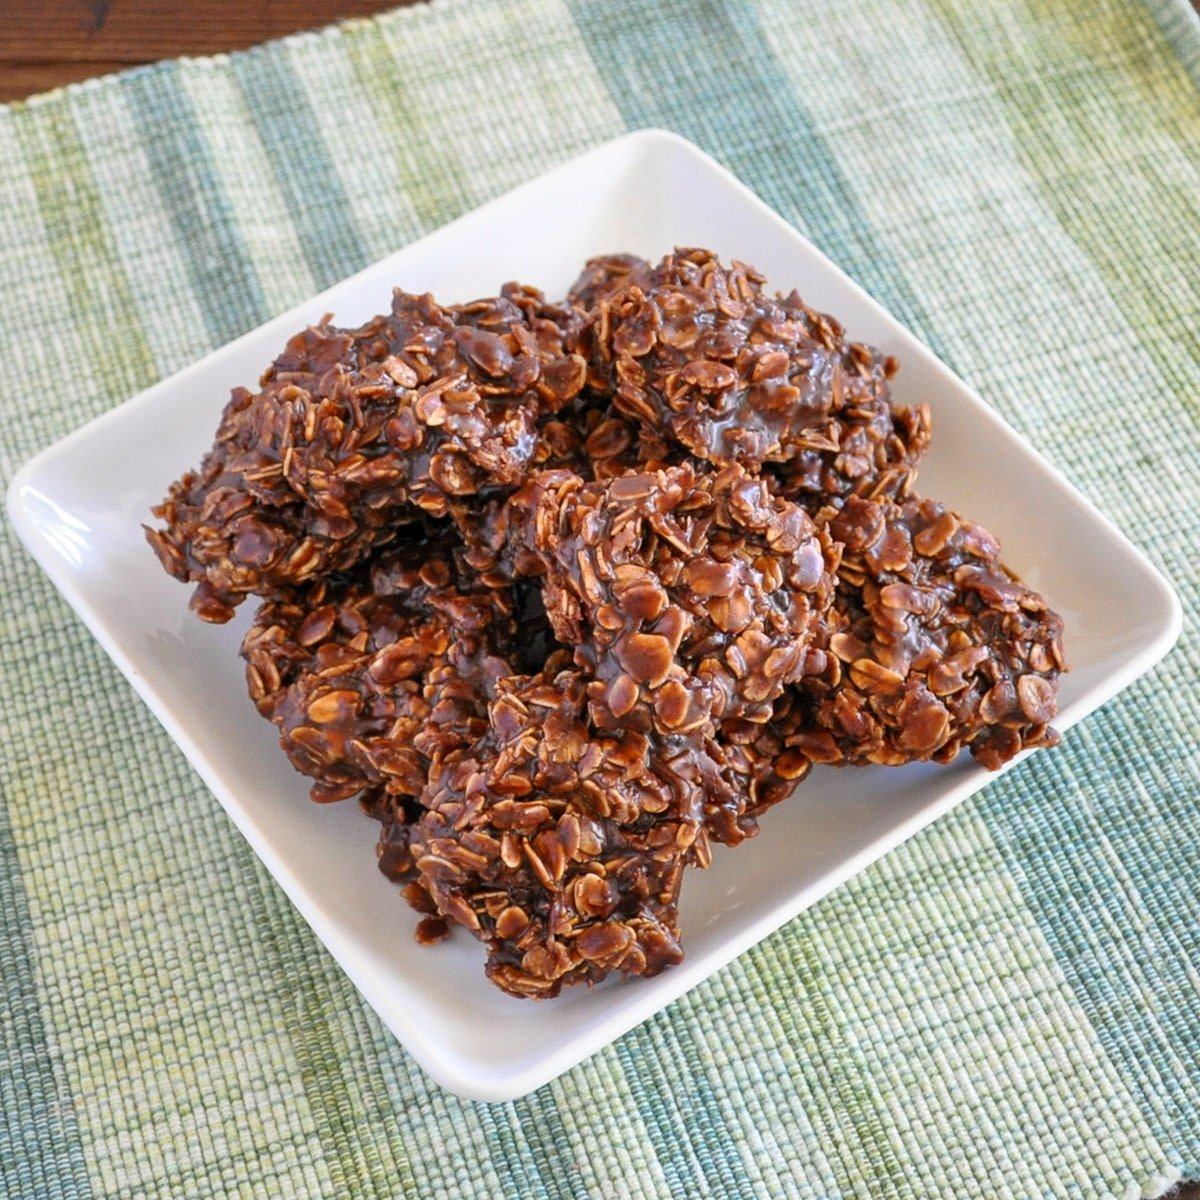 a plate of oatmeal chocolate no bake cookies on a green and blue plaid mat